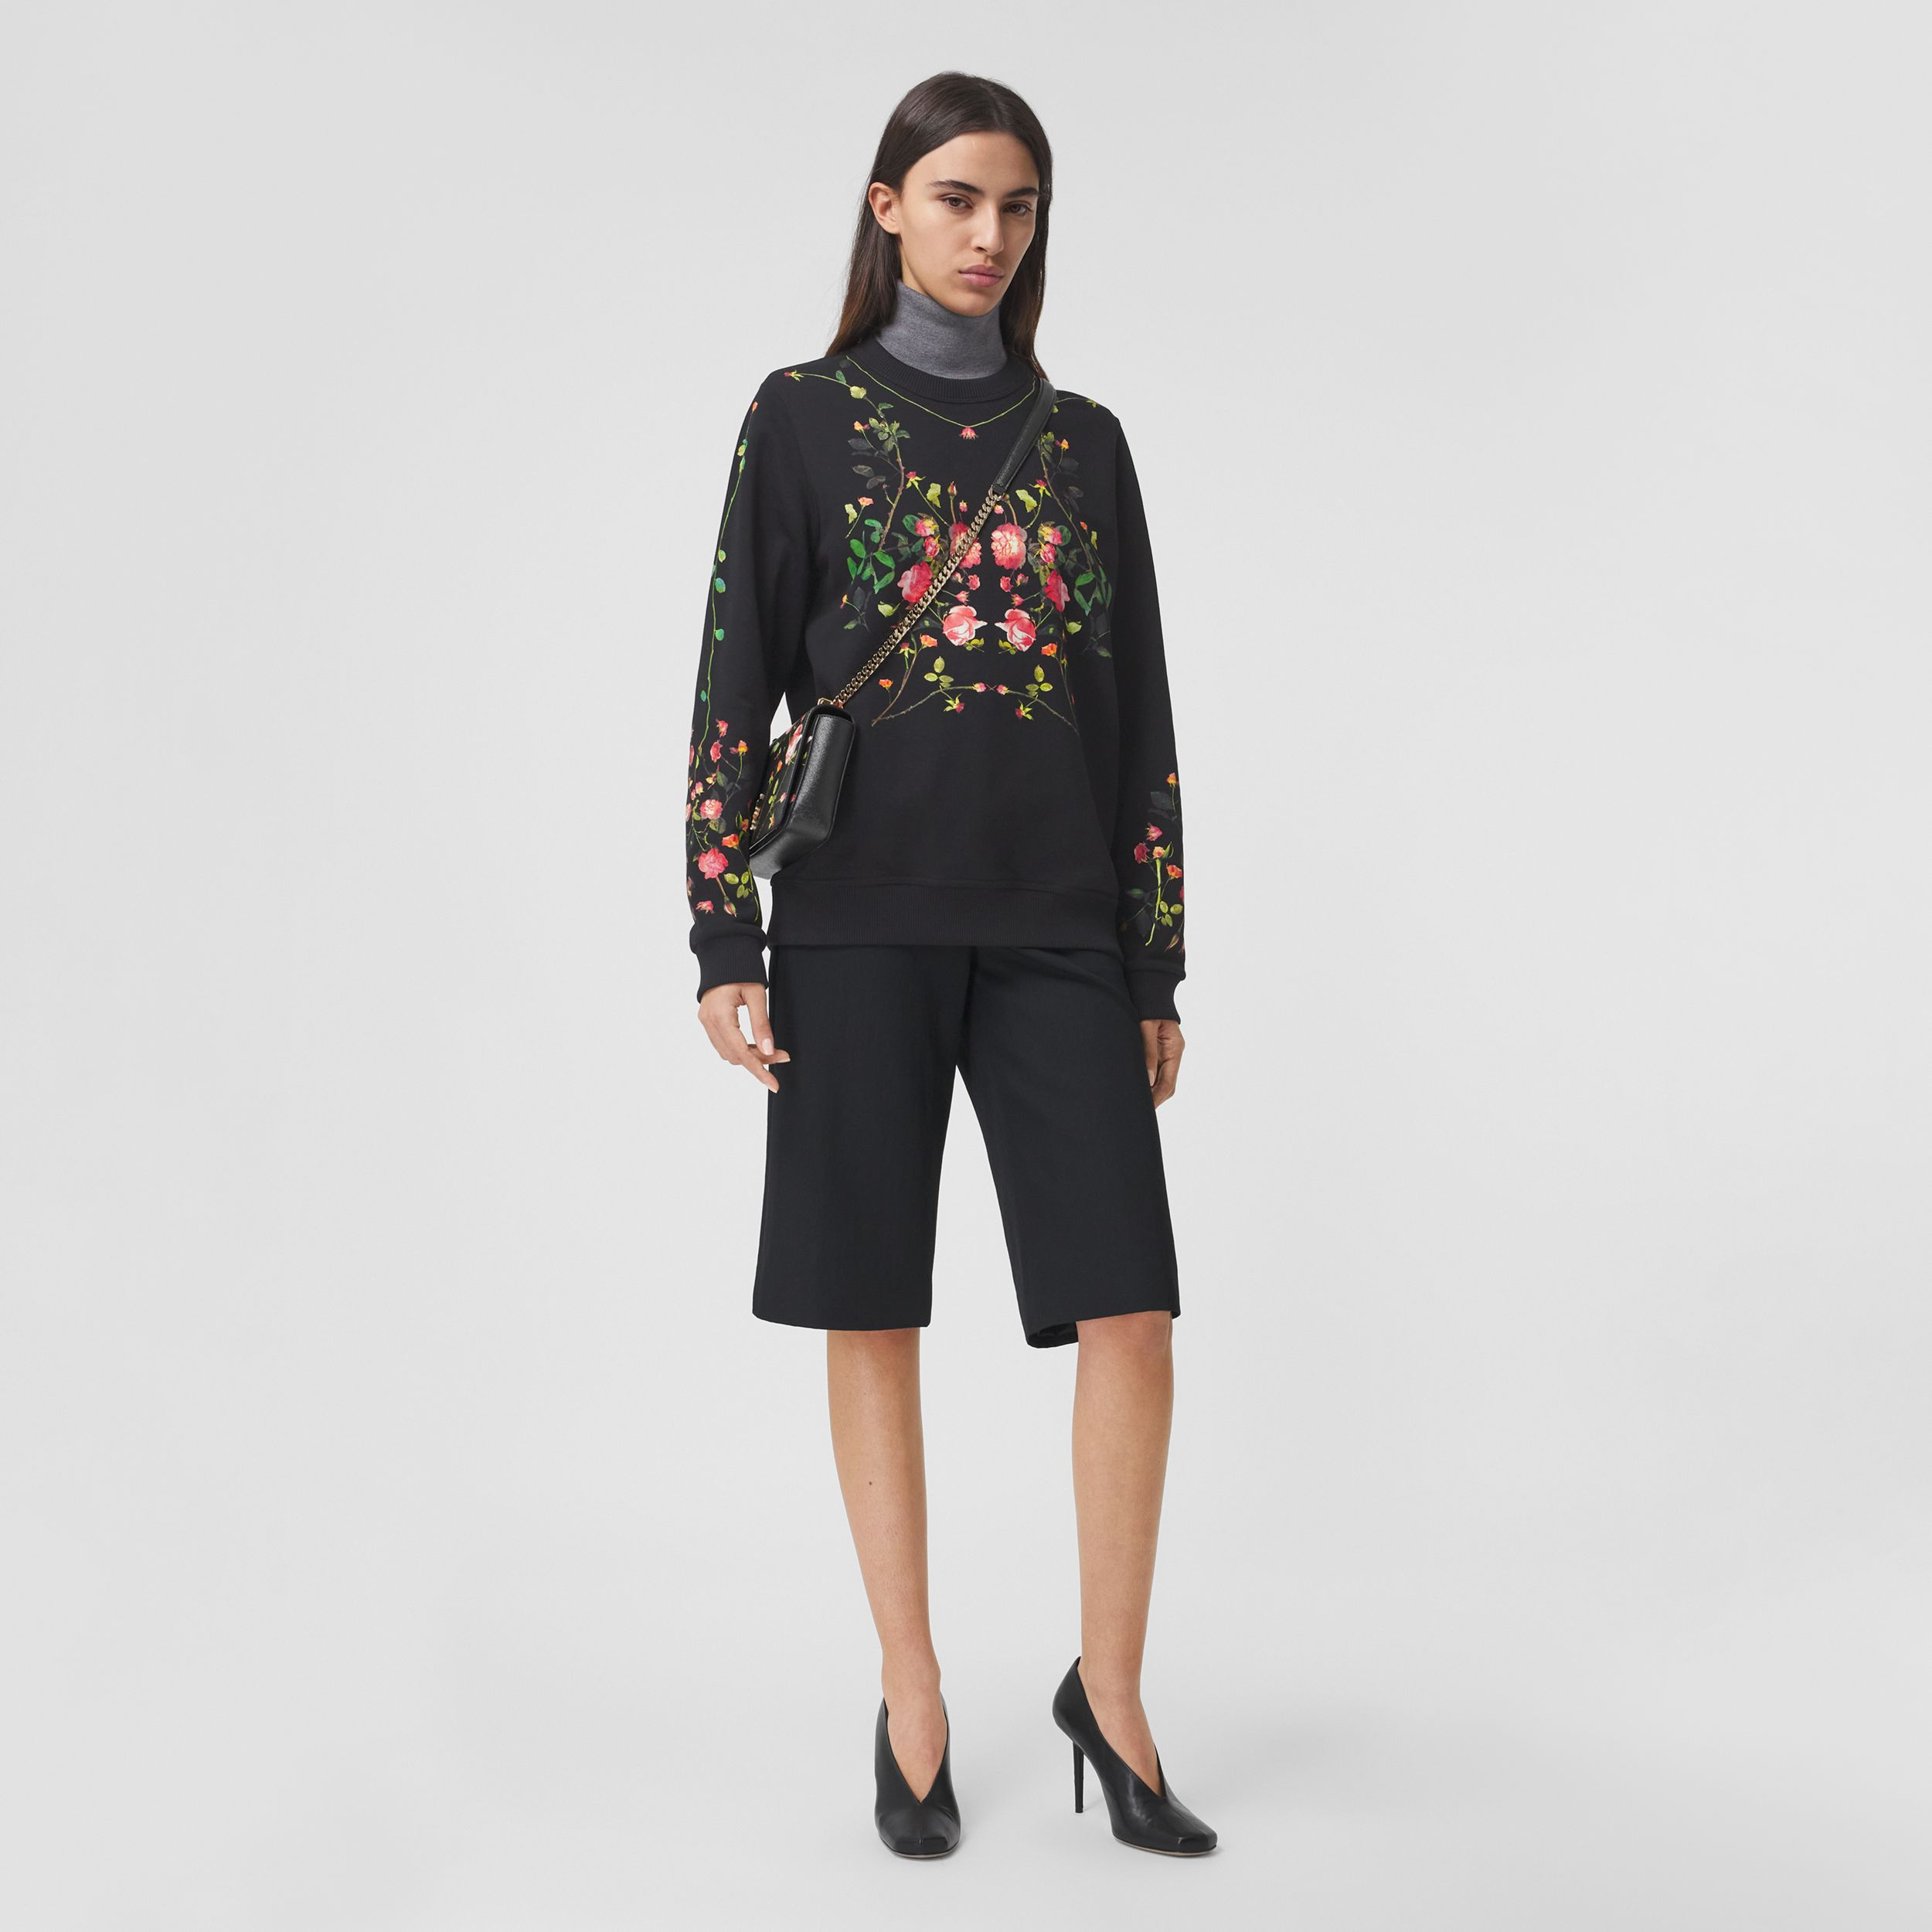 Rose Print Cotton Oversized Sweatshirt in Black - Women | Burberry - 1